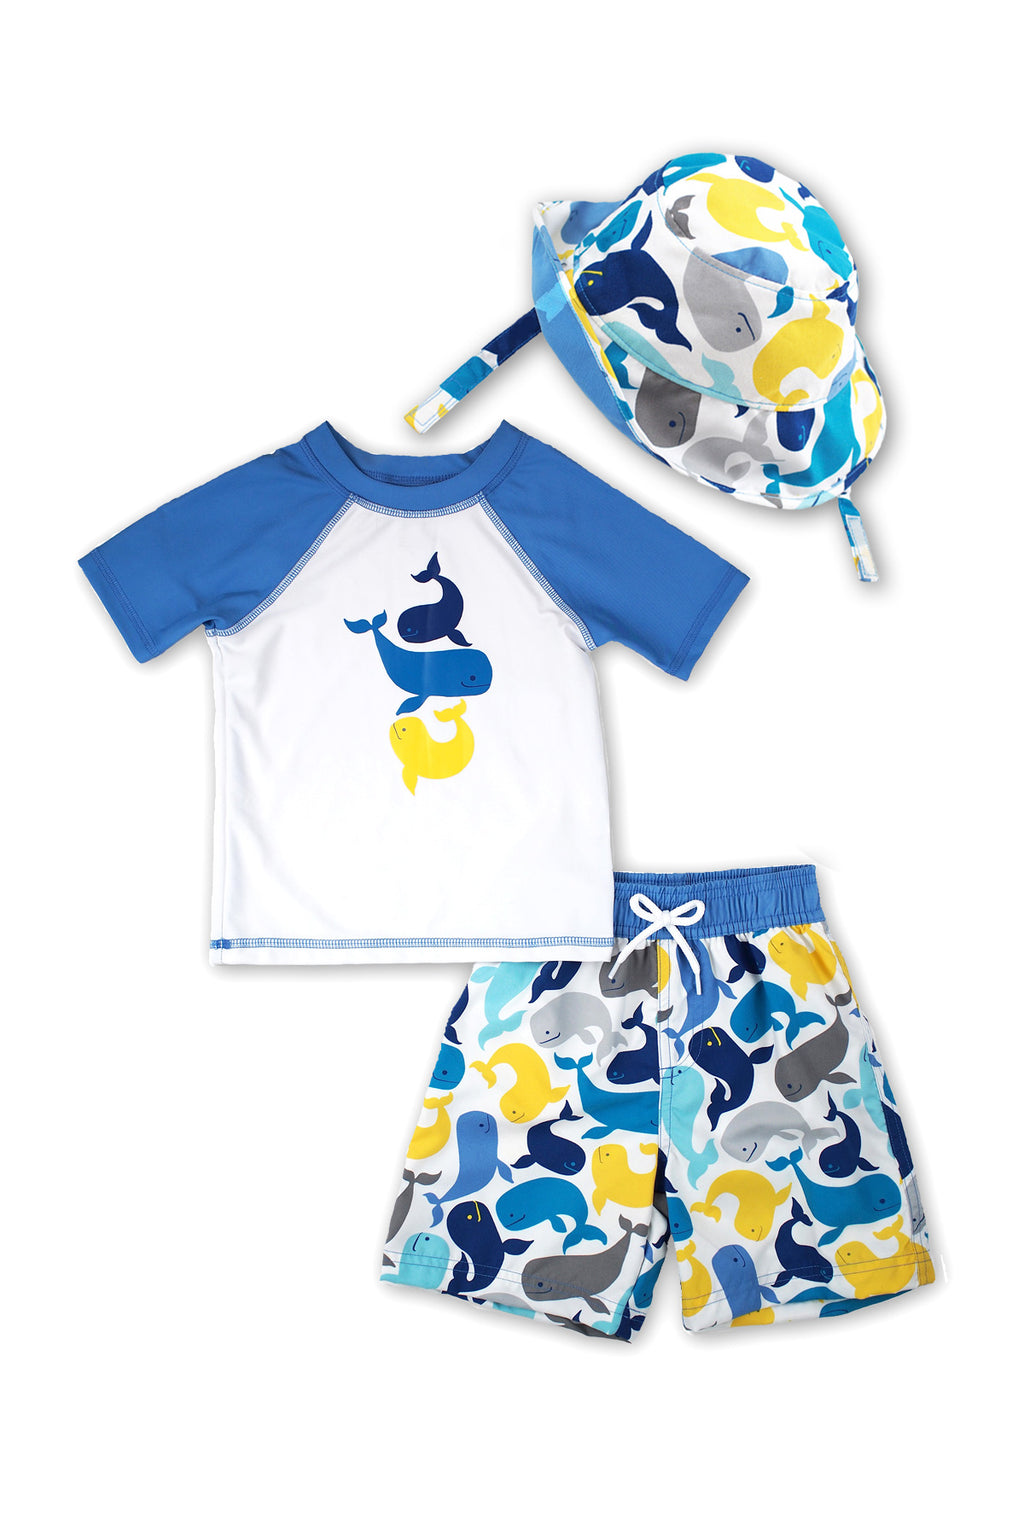 Boys Swimming Whale Short Sleeve Rash Guard & Swim Trunks With Bucket Hat 3pc Set, Slate Blue